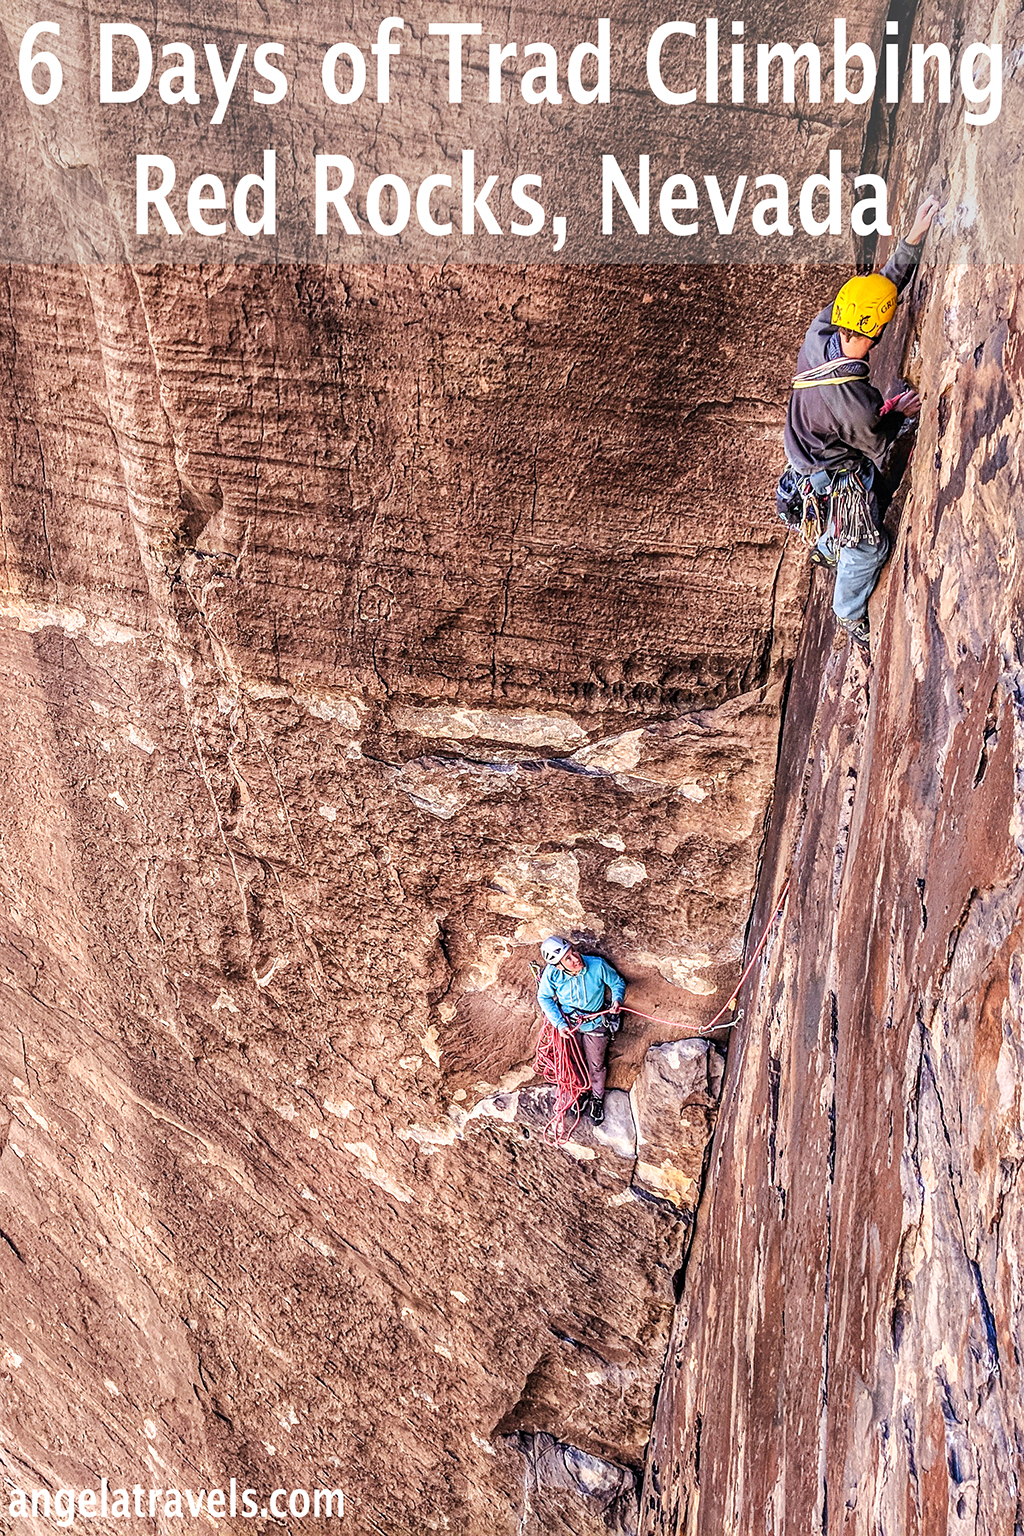 6 Days of Trad Climbing in Red Rocks, Nevada